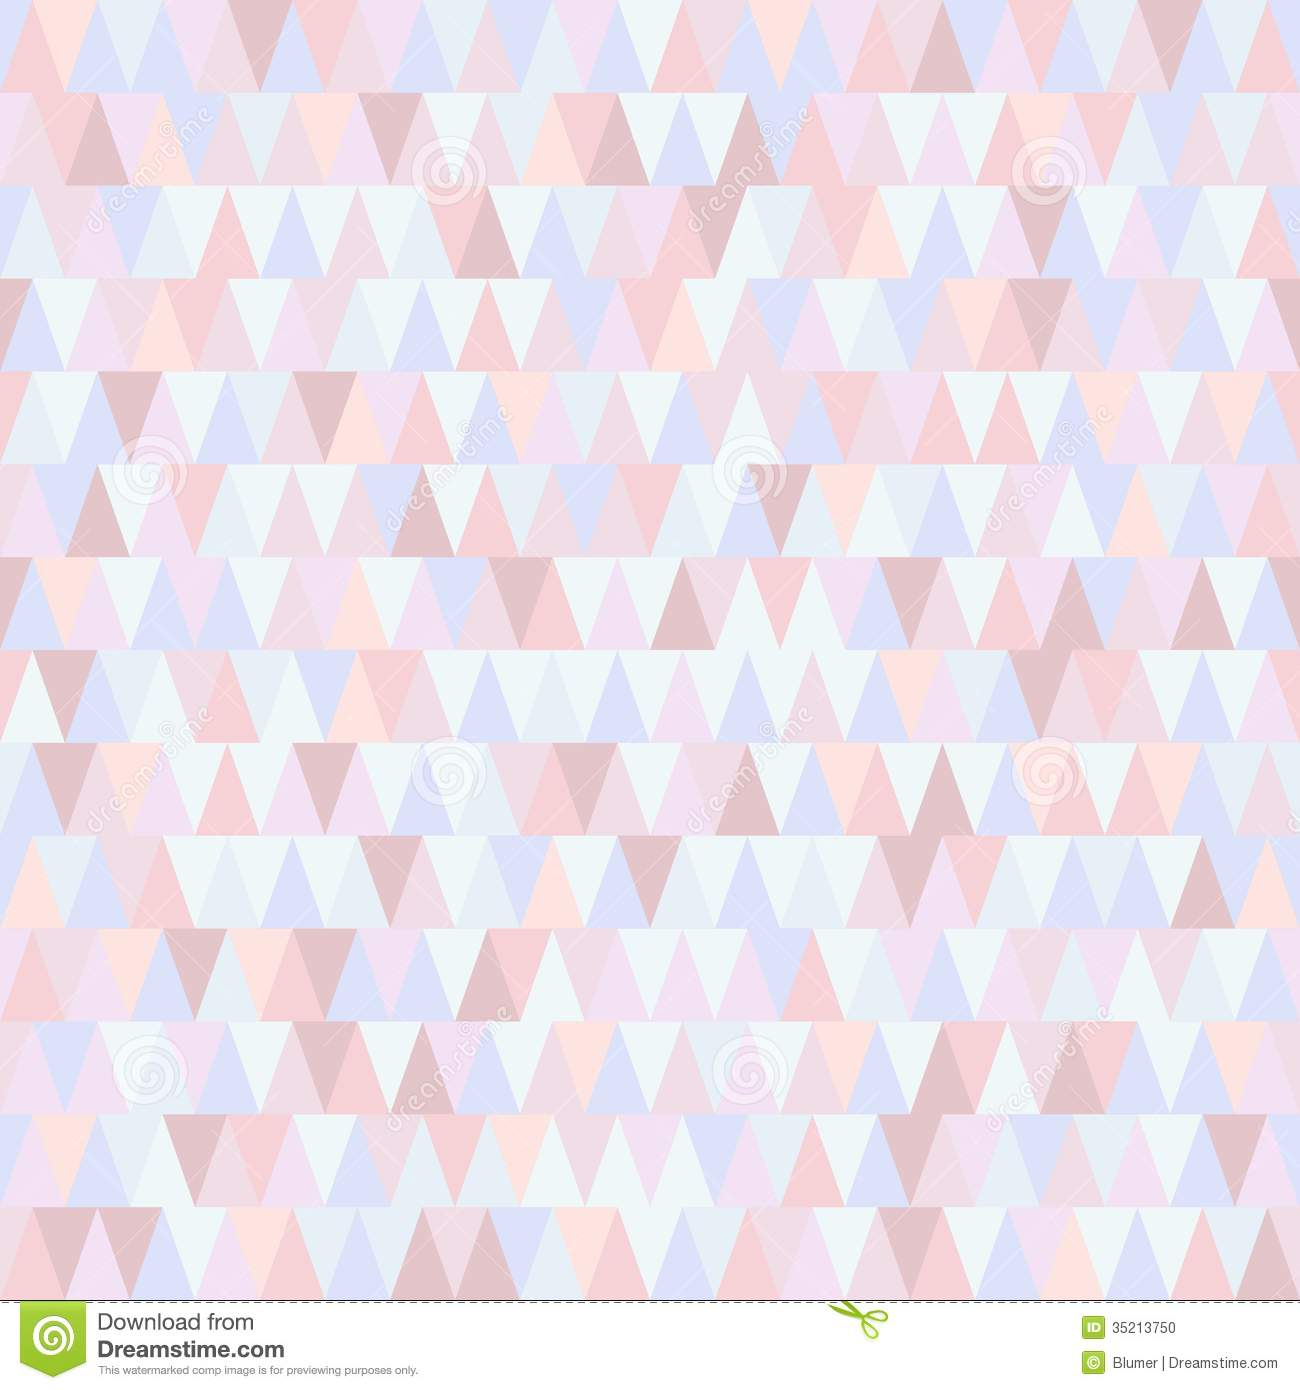 Texture background of seamless damask blue wallpaper stock photo - Seamless Wallpaper Stock Photo Image 35213750